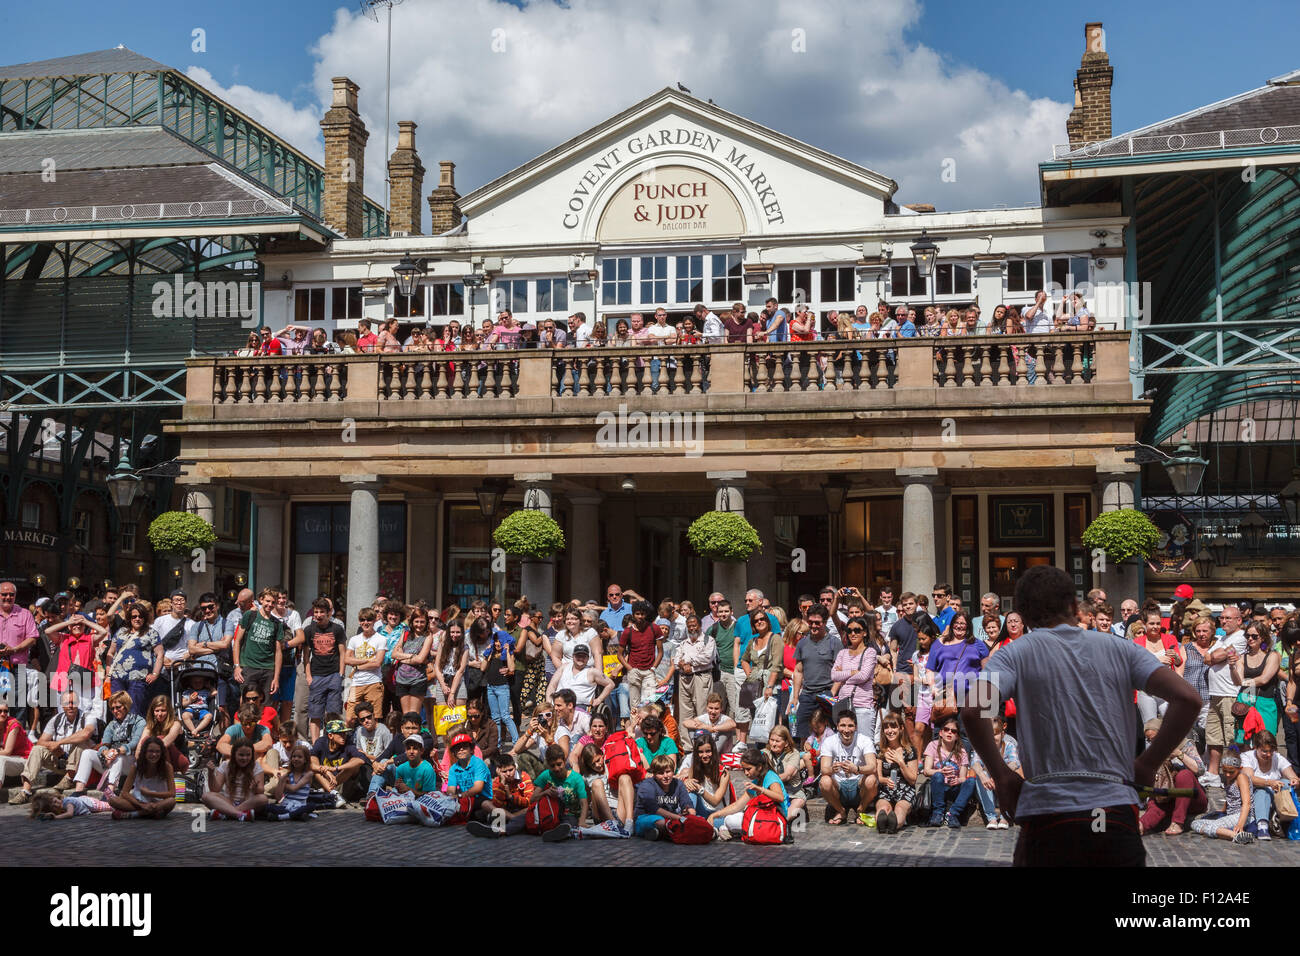 Street performer entertaining a crowd on a sunny day in London's Covent Garden piazza. Stock Photo